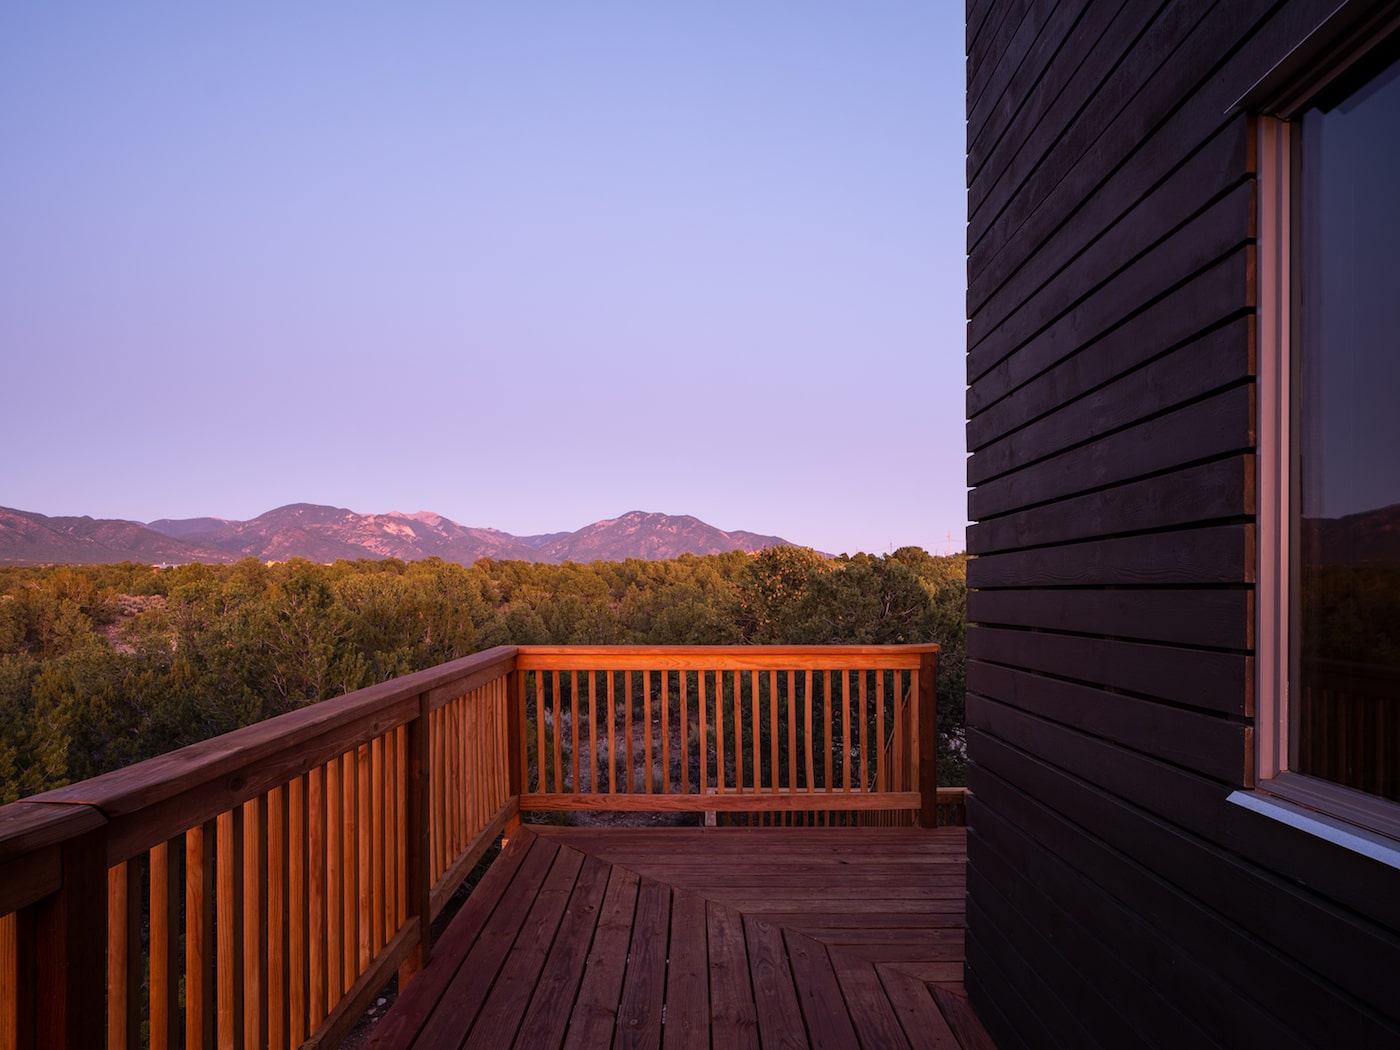 Views of mountain in distance on timber deck